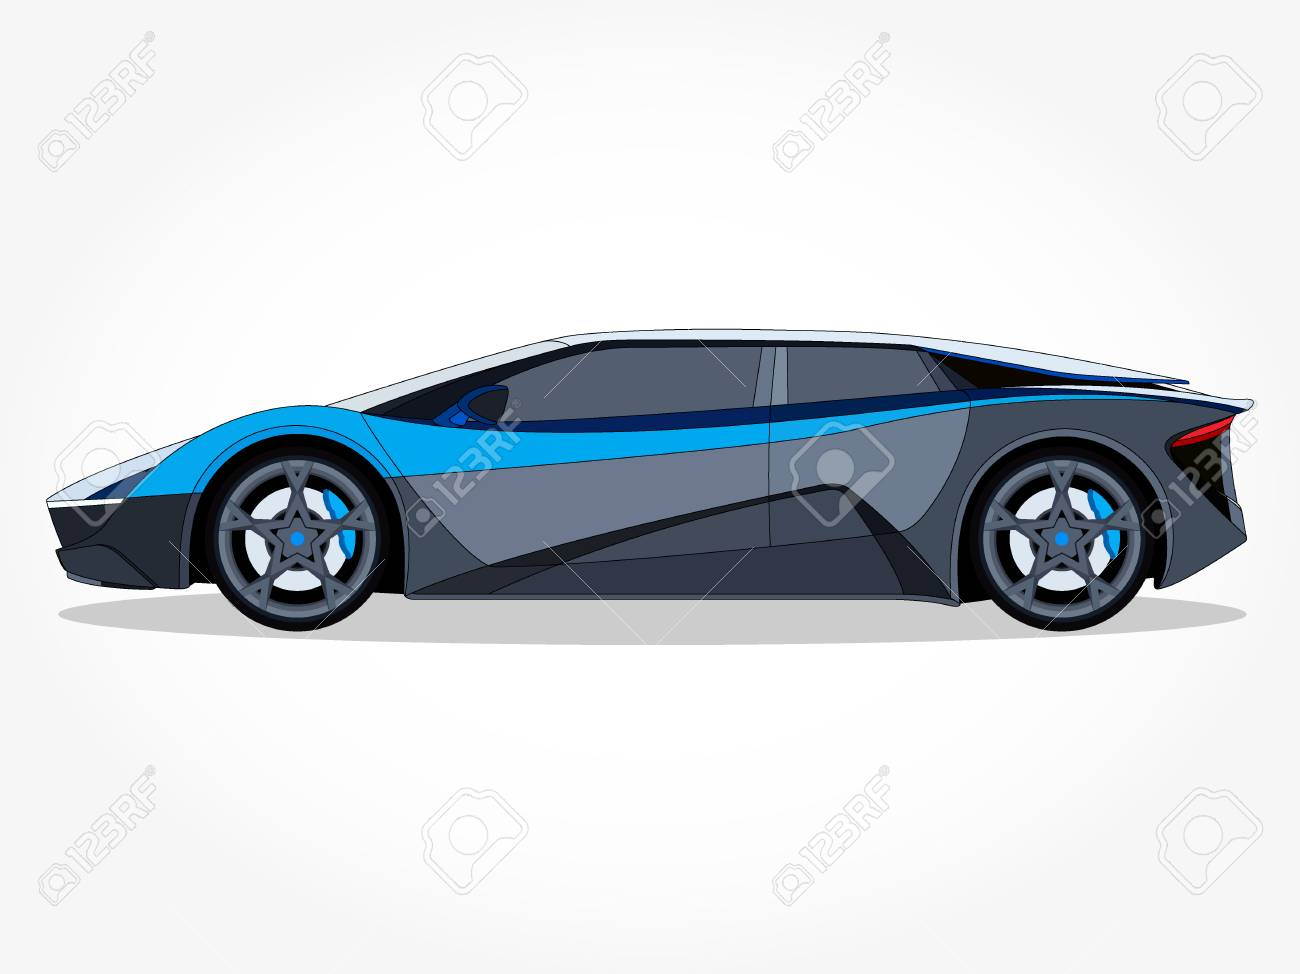 Cool Car Vector Illlustration With Details And Shadow Effect Royalty